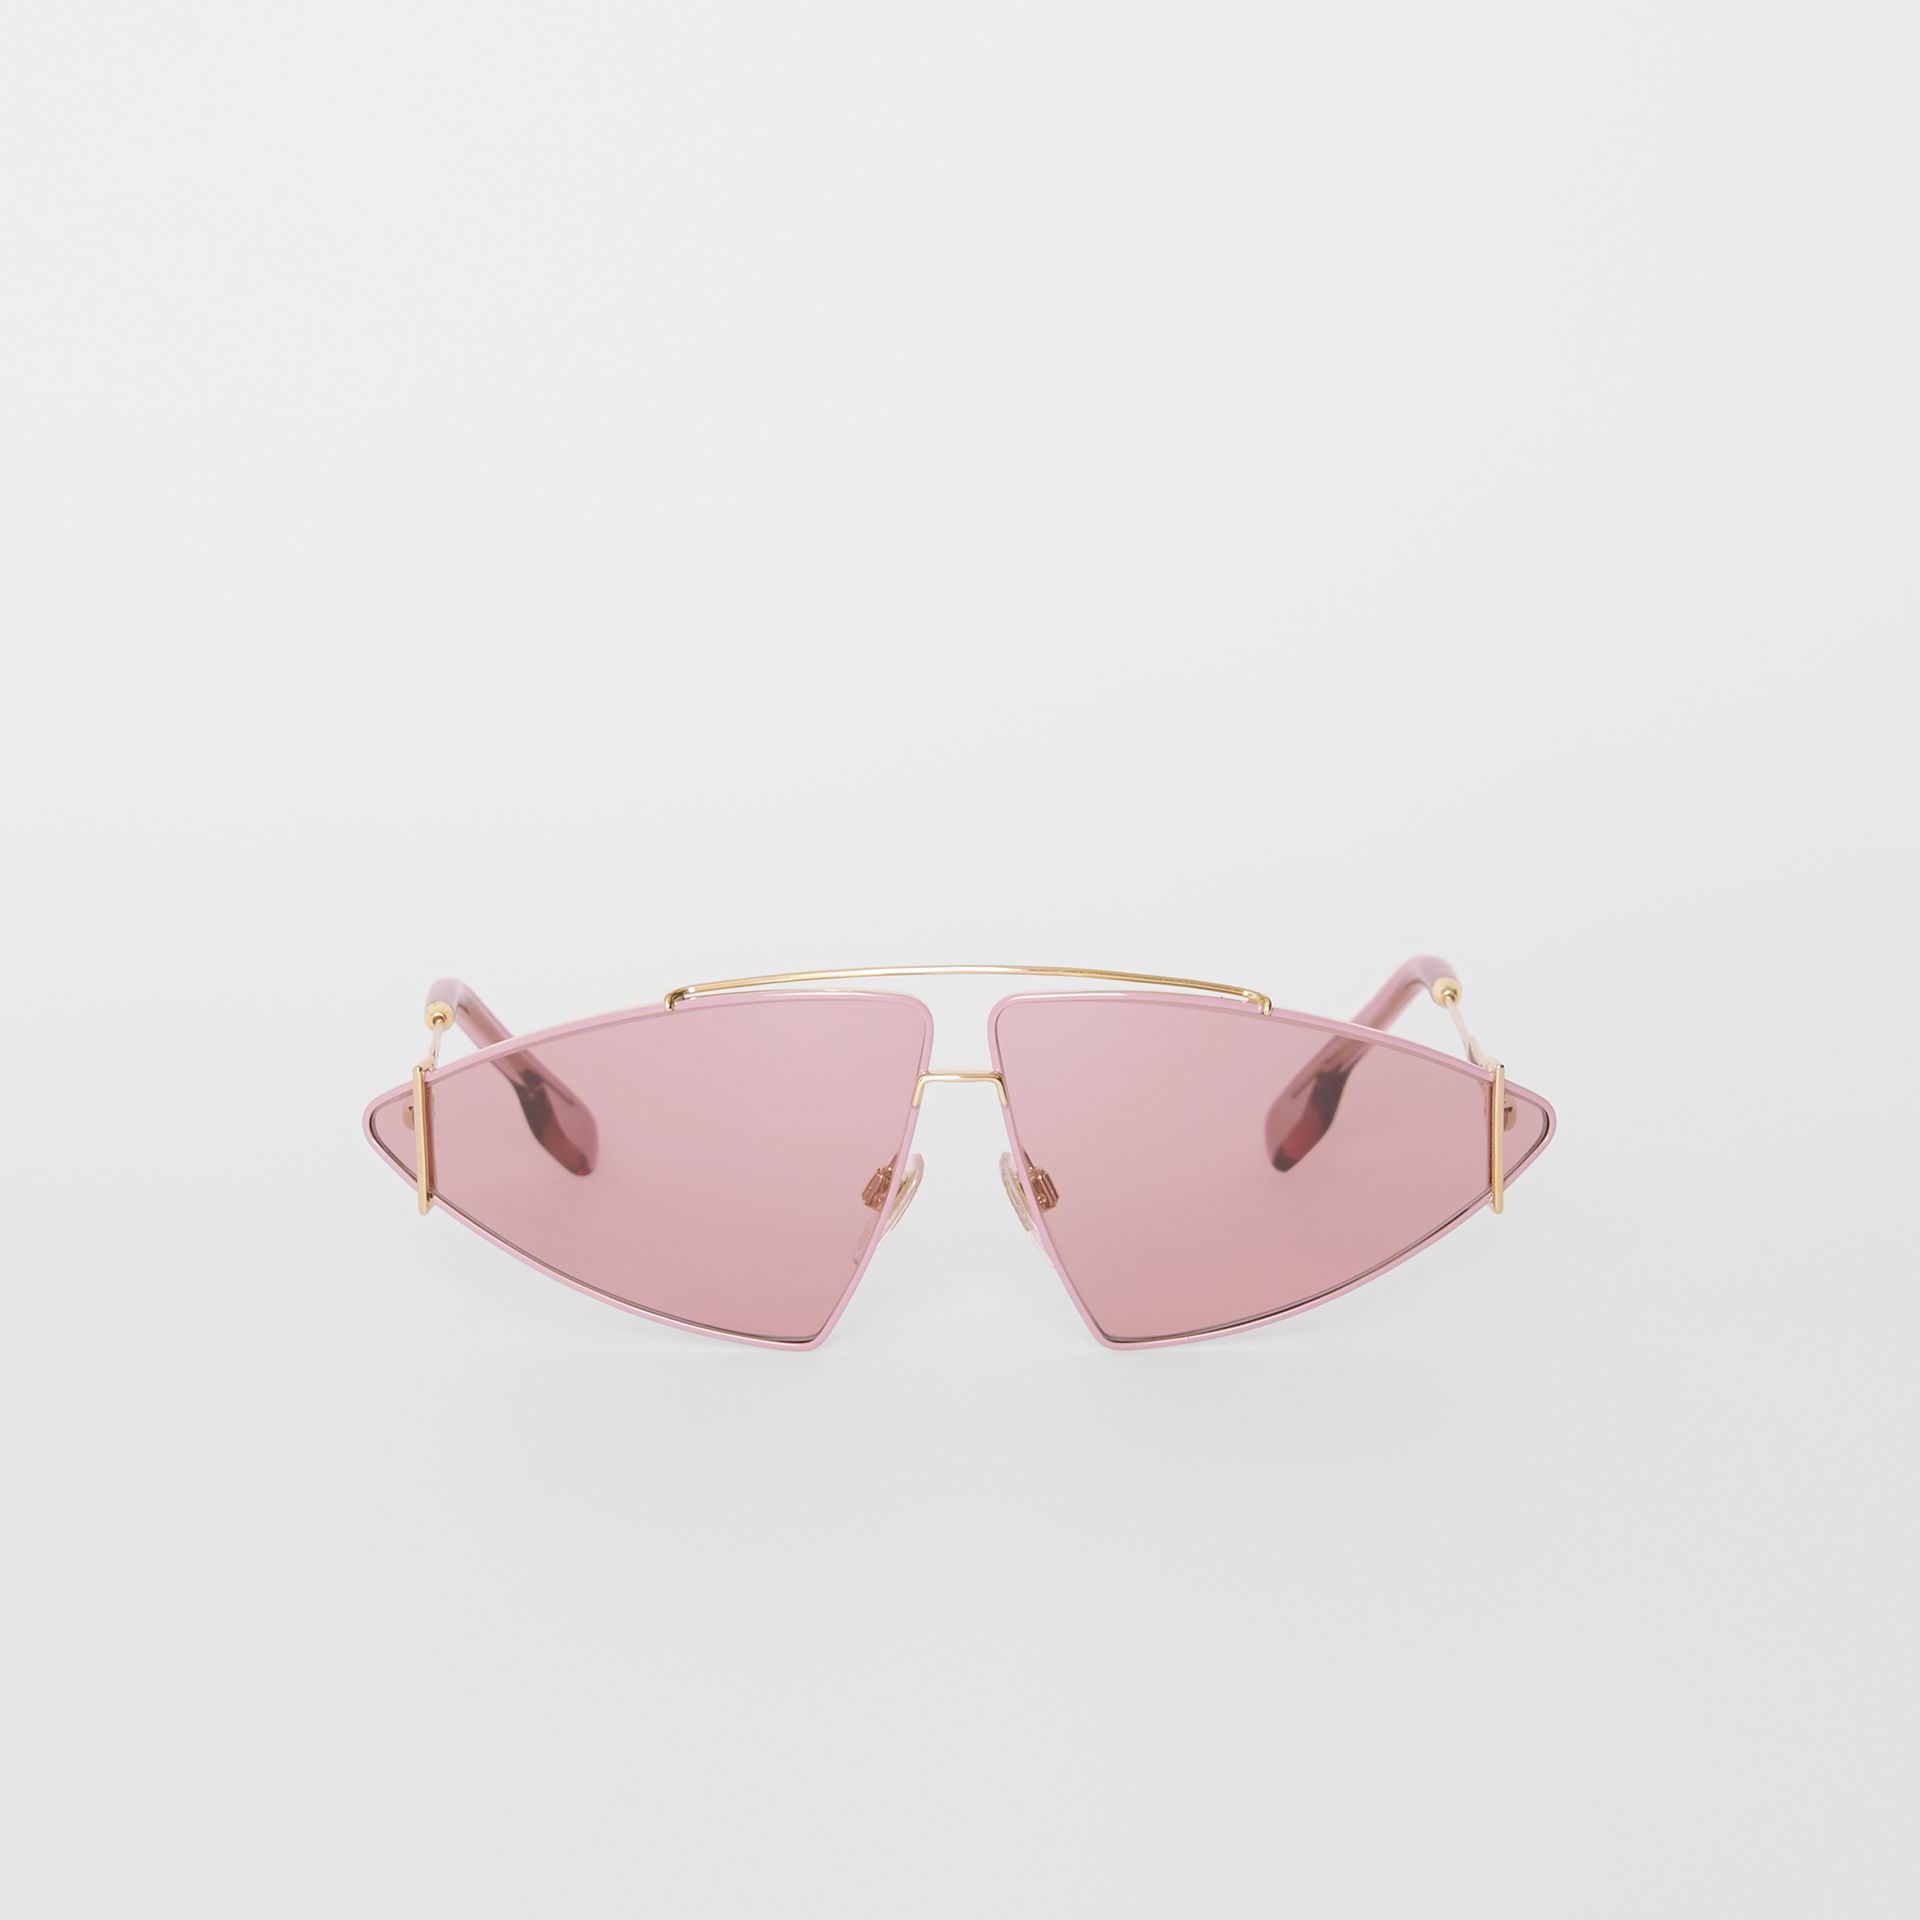 Gold-plated Triangular Frame Sunglasses in Blush Pink - Women | Burberry Australia - gallery image 0